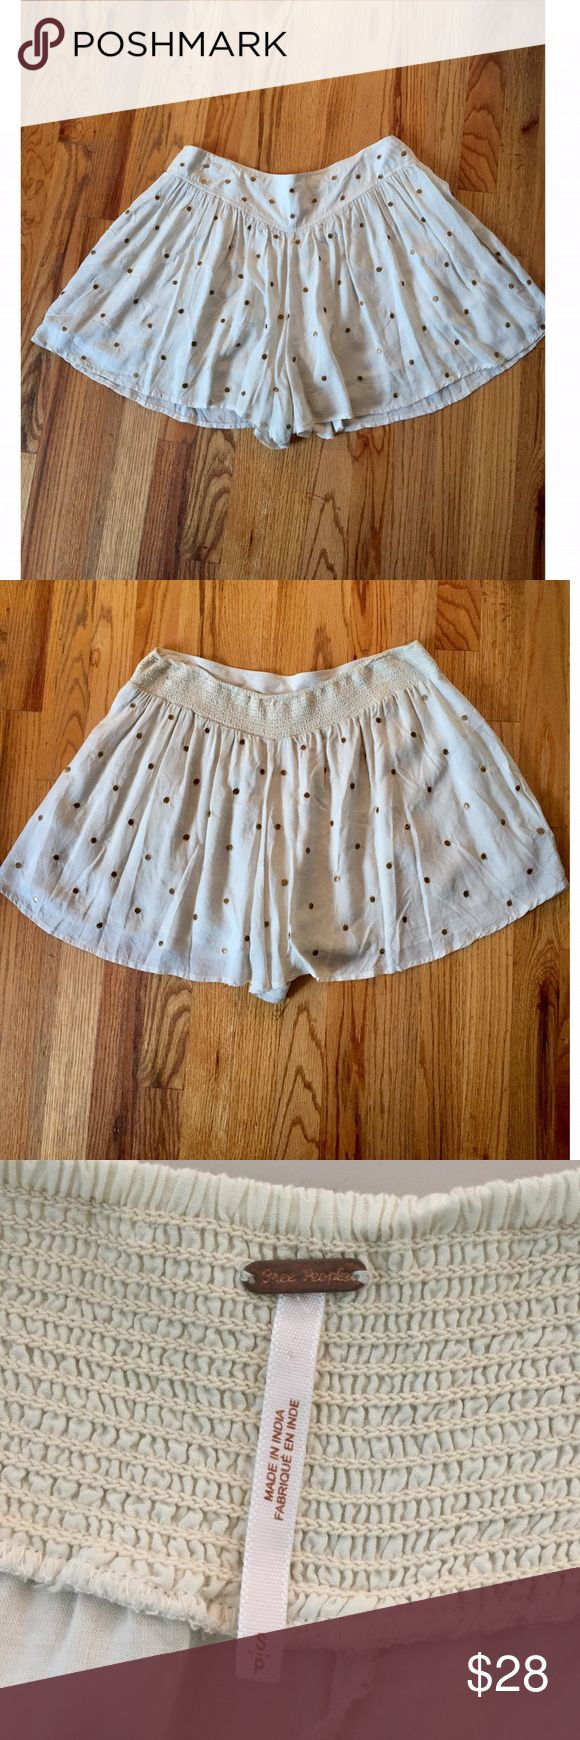 Women' Free People Flowy Shorts Free People high waisted flowy shorts. When on shorts look like a skirt. Tag reads Small, but with the elastic band the shorts fit more like a Medium to Large. Cream color with gold inlayed circles. Free People Shorts